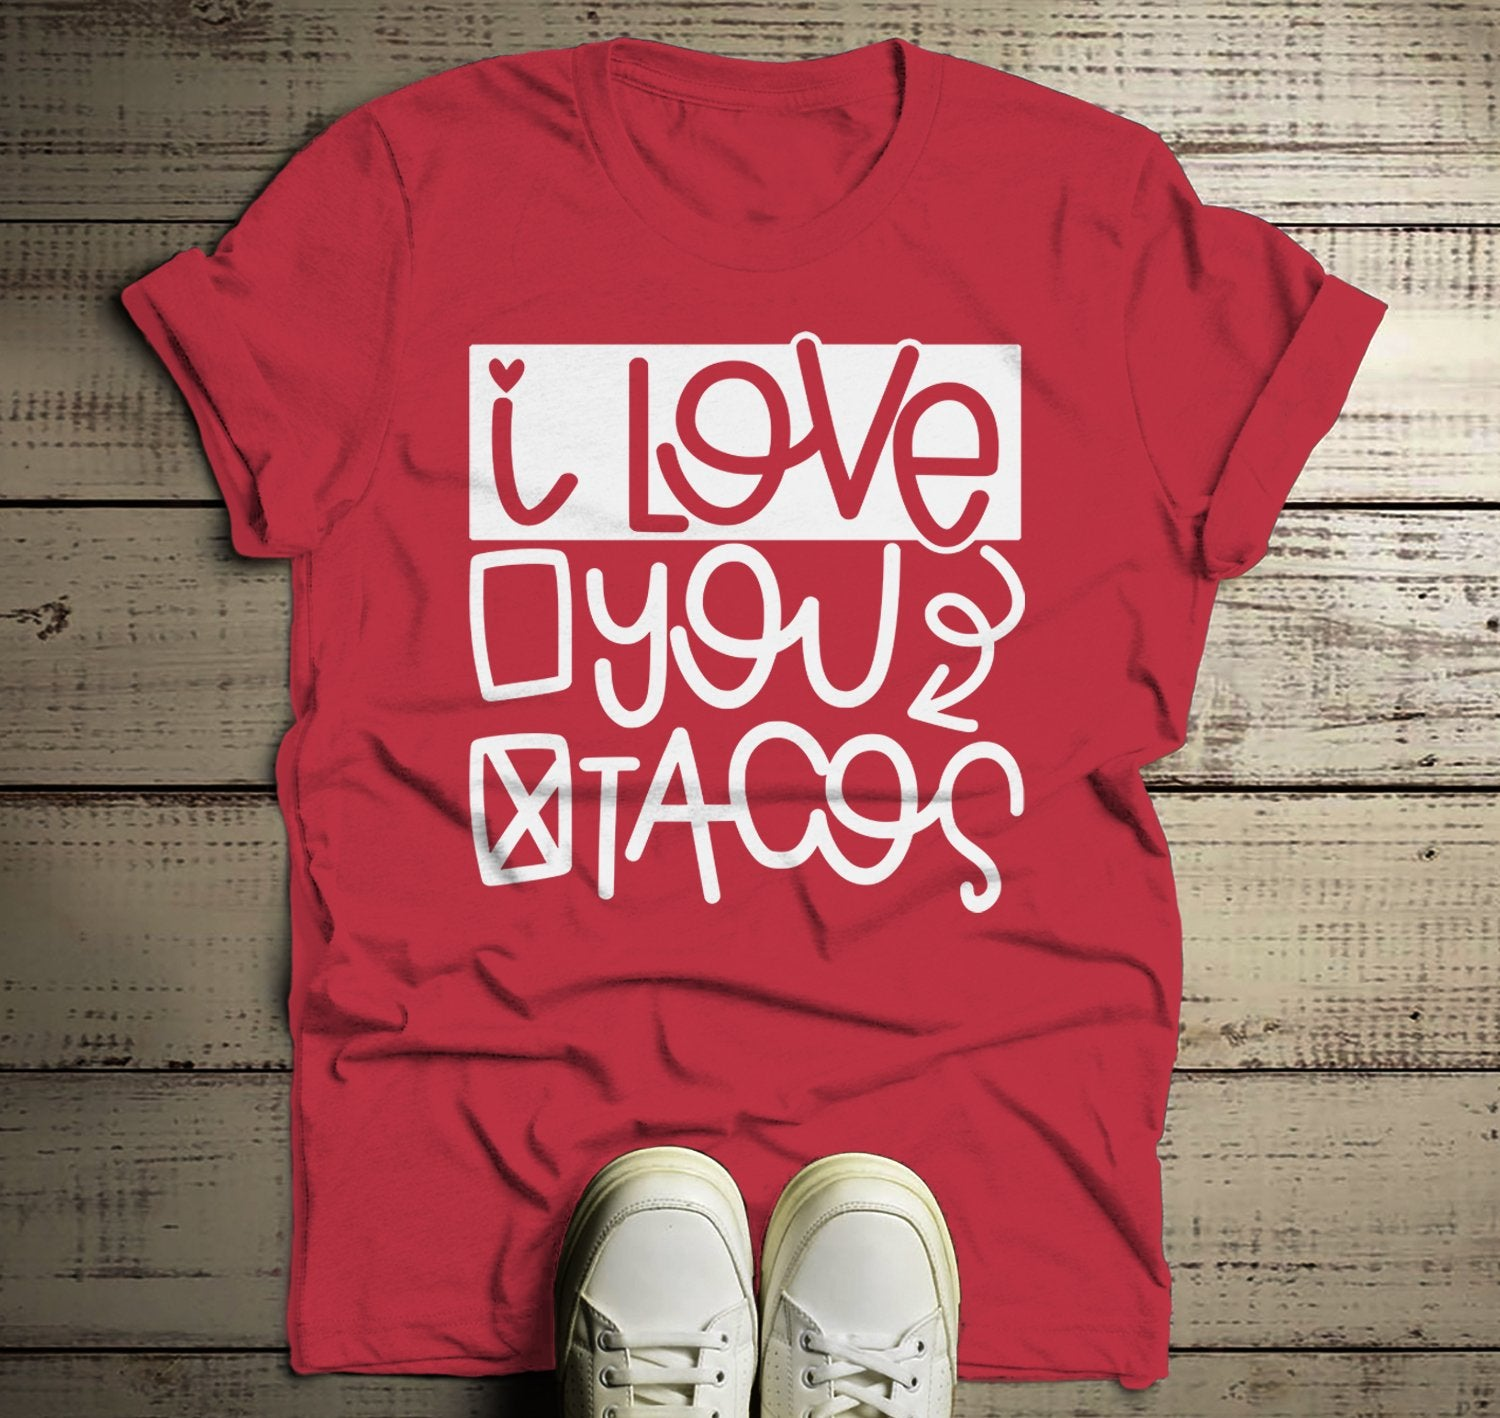 I Love Lamp Heart /<3 Light You Quote Silly Crazy Like Funny Men/'s V-Neck T-Shirt